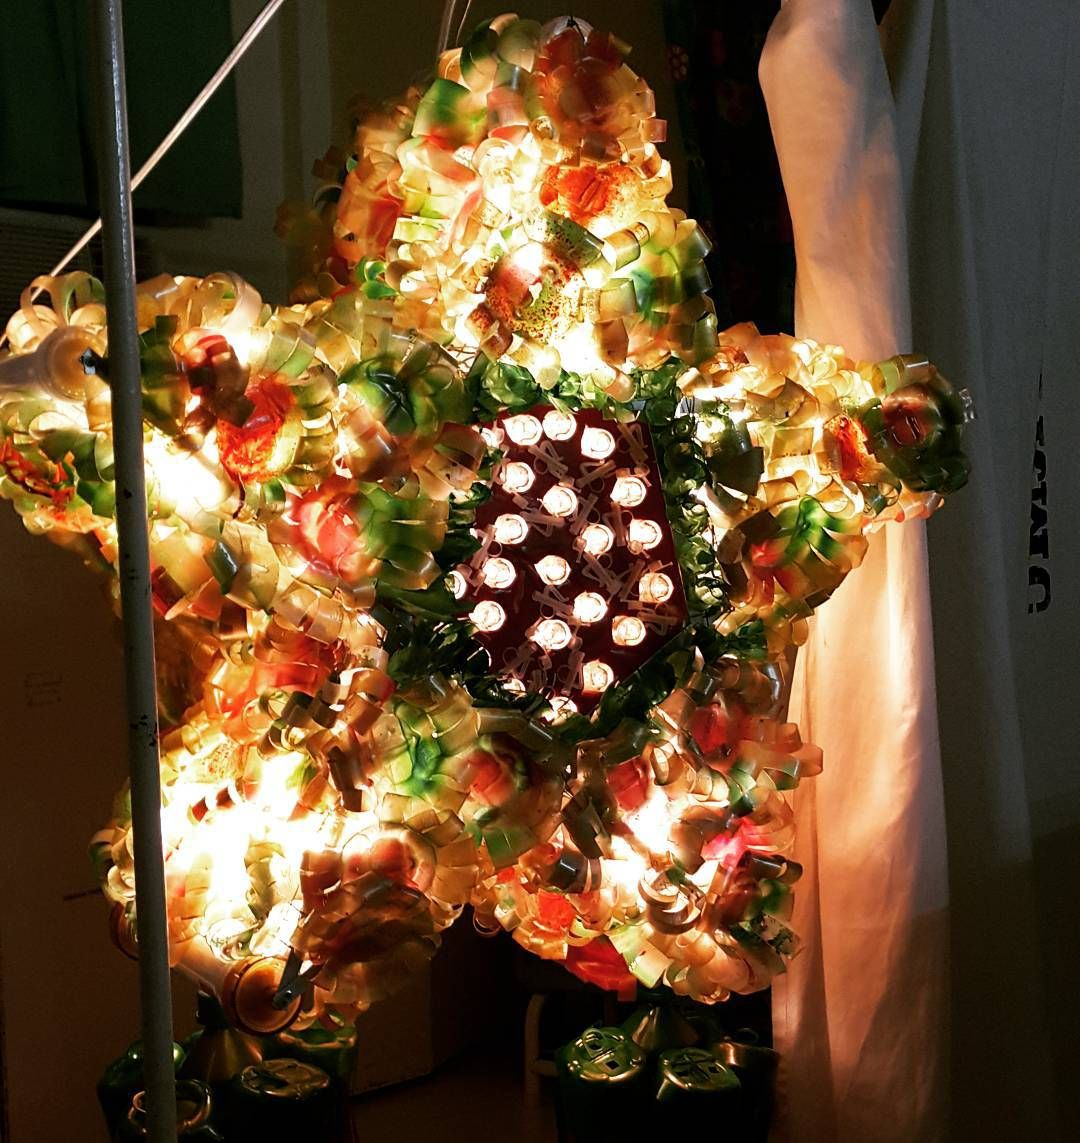 I Just Opine Blog Archive Christmas Decorations Out Of Recycled Materials Christmas Parol Diy Christmas Parol Recycled Parol